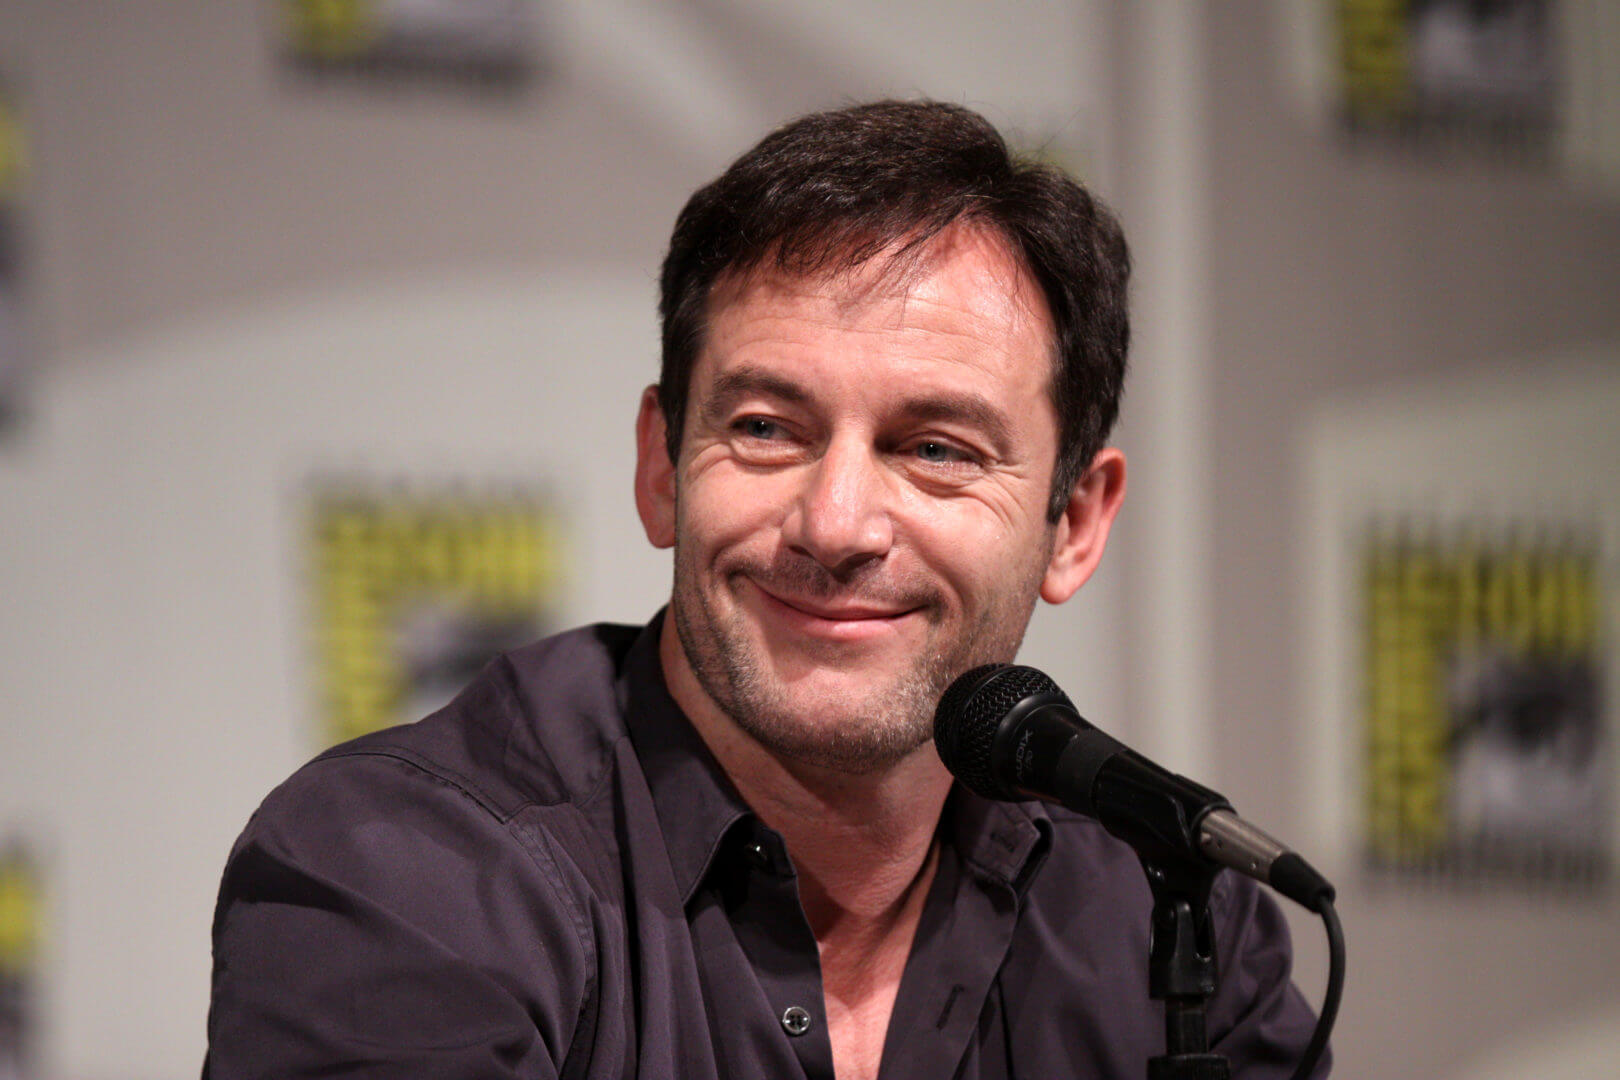 jason isaacs footballjason isaacs tom felton, jason isaacs young, jason isaacs gif, jason isaacs height, jason isaacs vk, jason isaacs captain hook, jason isaacs 2016, jason isaacs dig, jason isaacs family, jason isaacs stalin, jason isaacs lucius malfoy, jason isaacs star trek, jason isaacs twitter, jason isaacs imdb, jason isaacs photoshoot, jason isaacs audiobook, jason isaacs in harry potter, jason isaacs wiki, jason isaacs football, jason isaacs daughters